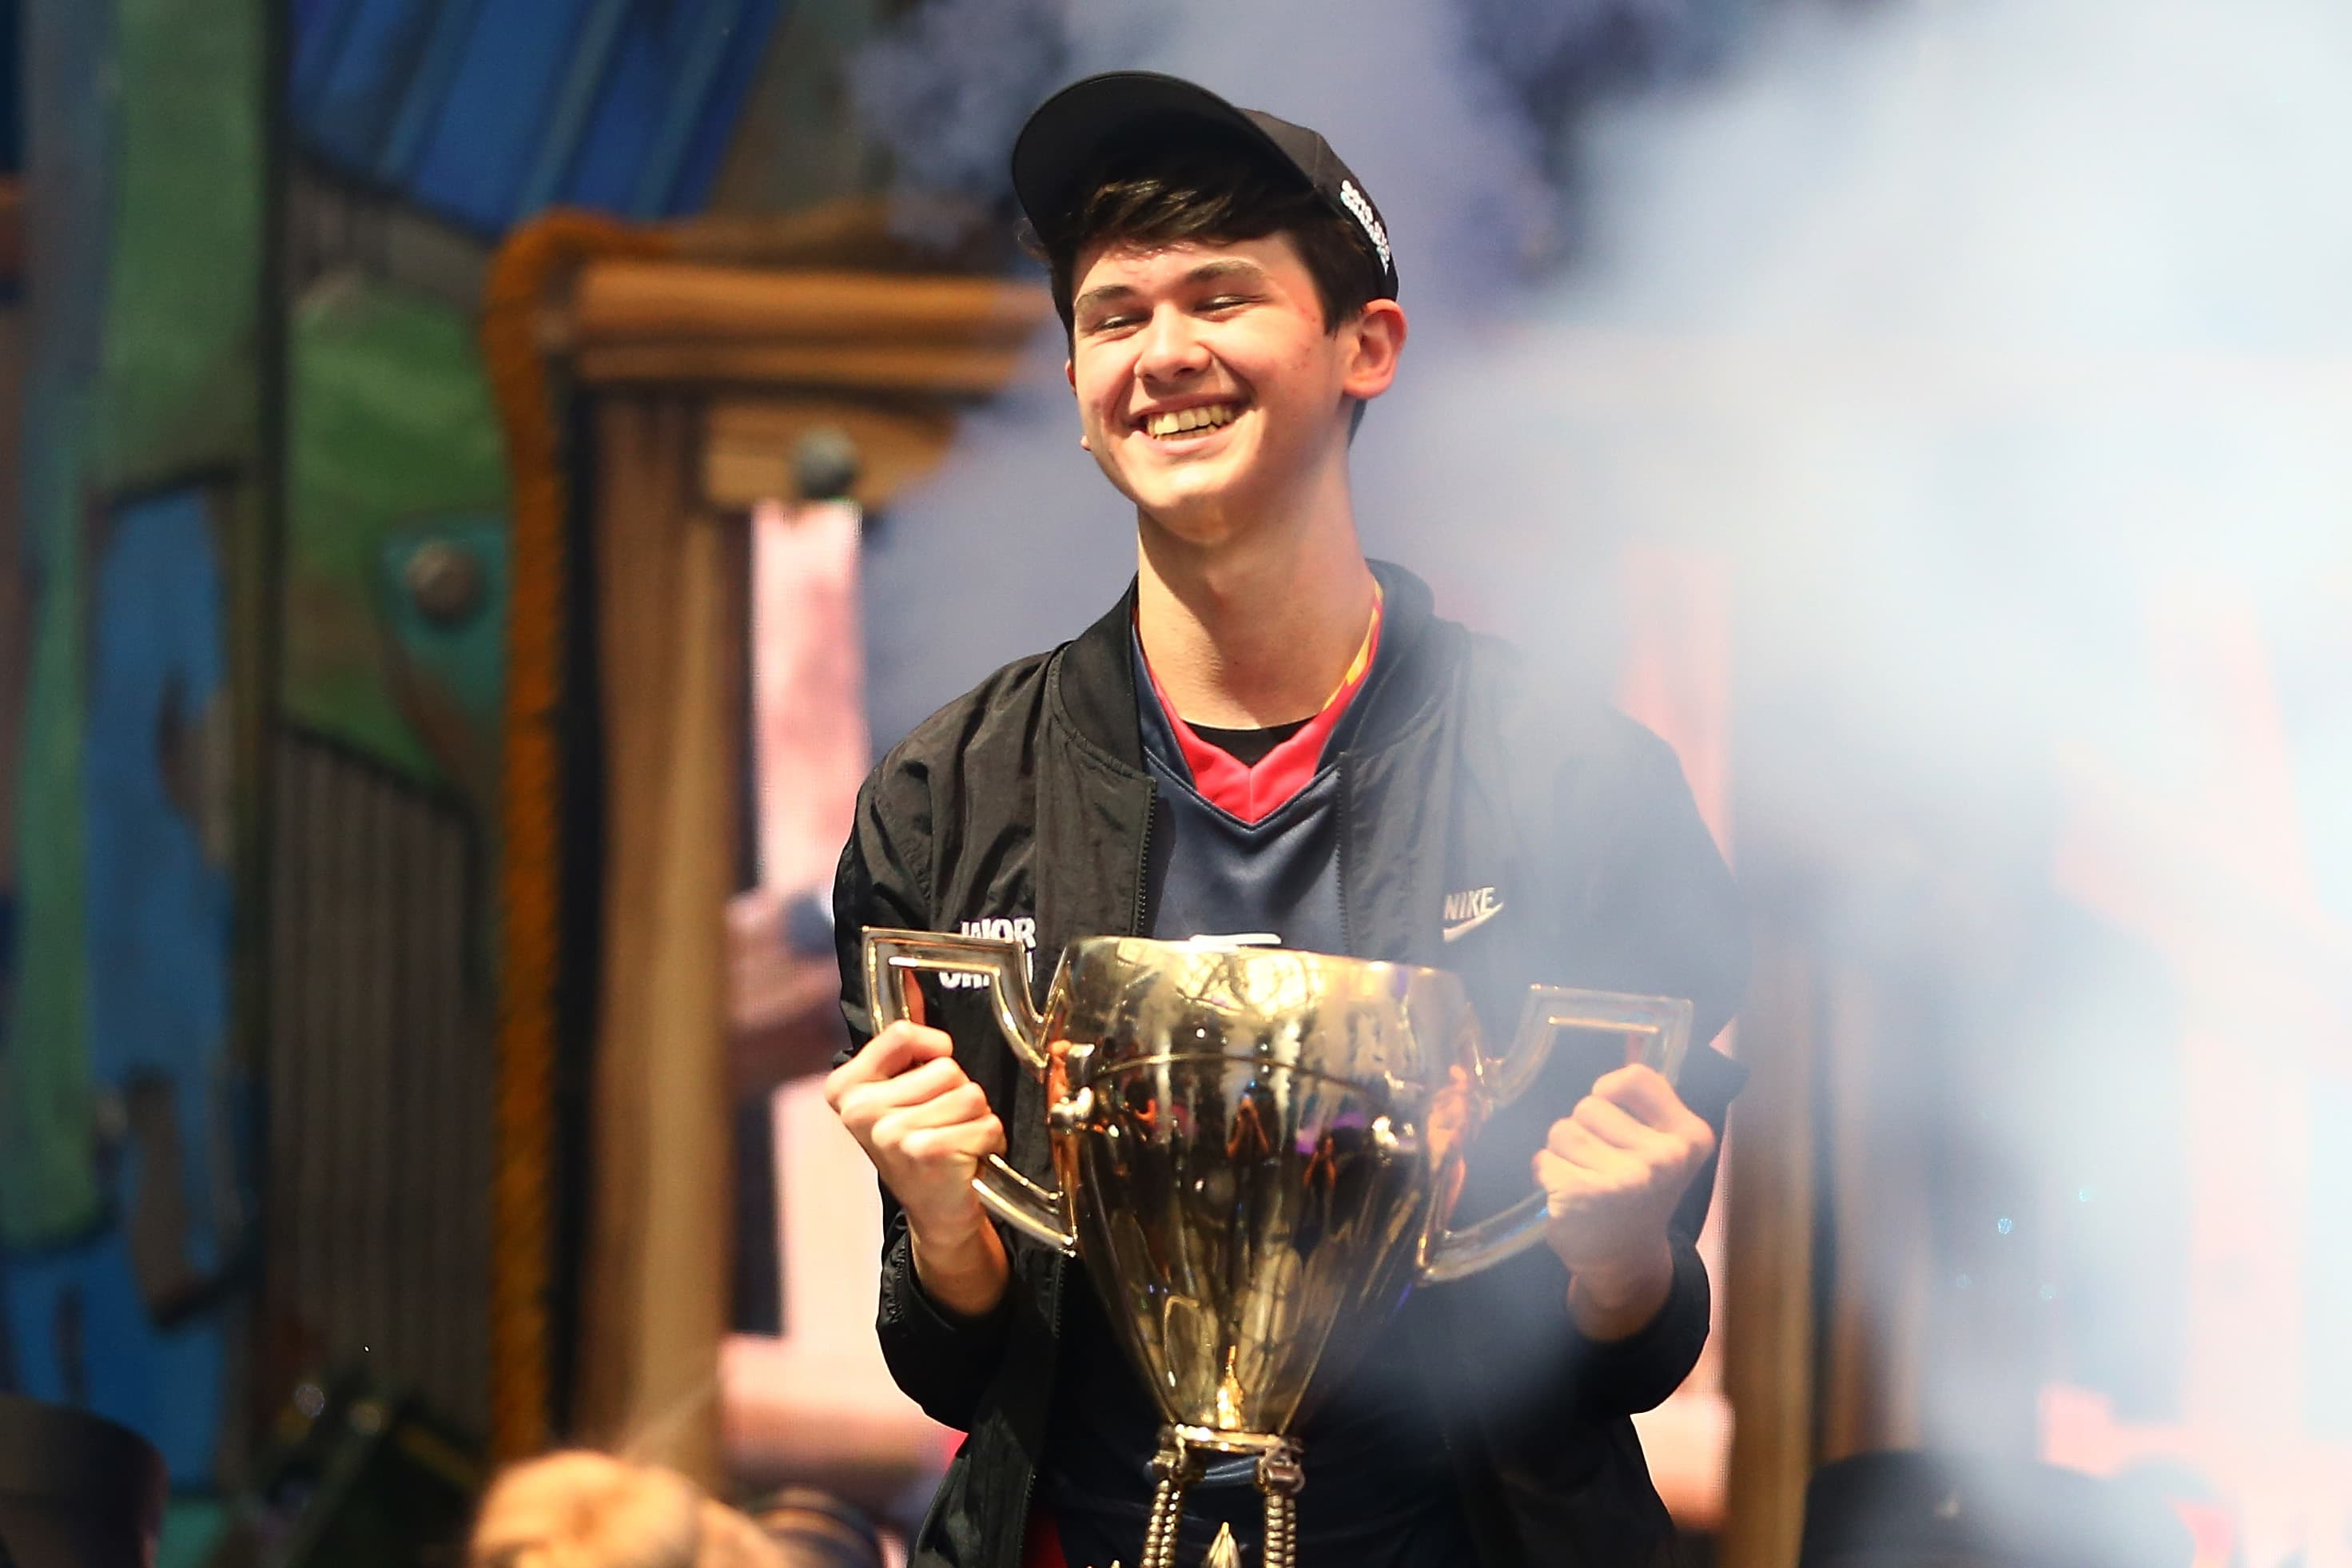 The teen Fortnite champ who just won $3 million practices 6 hours a day—even on school days thumbnail